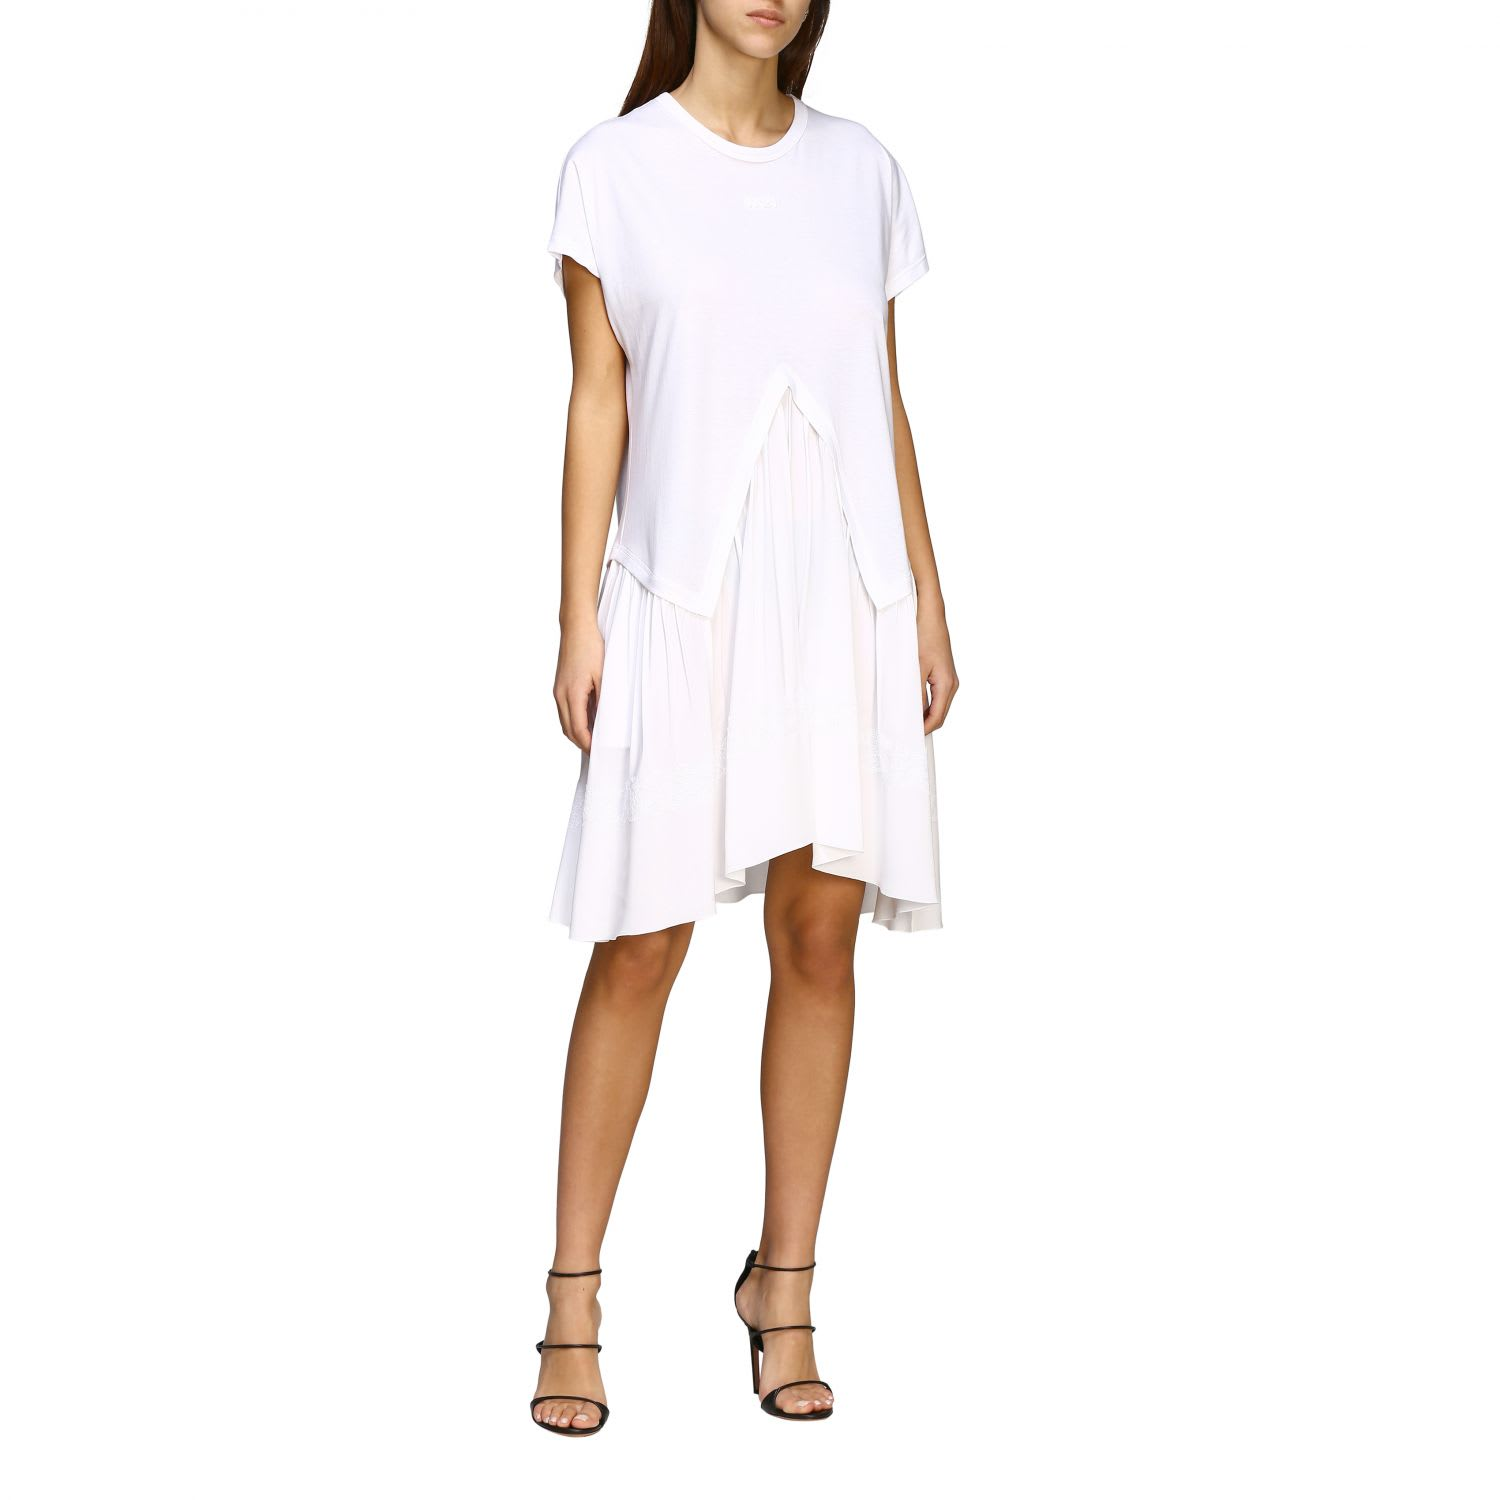 Buy N° 21 Dress N ° 21 Jersey Dress With Lace Details online, shop N.21 with free shipping